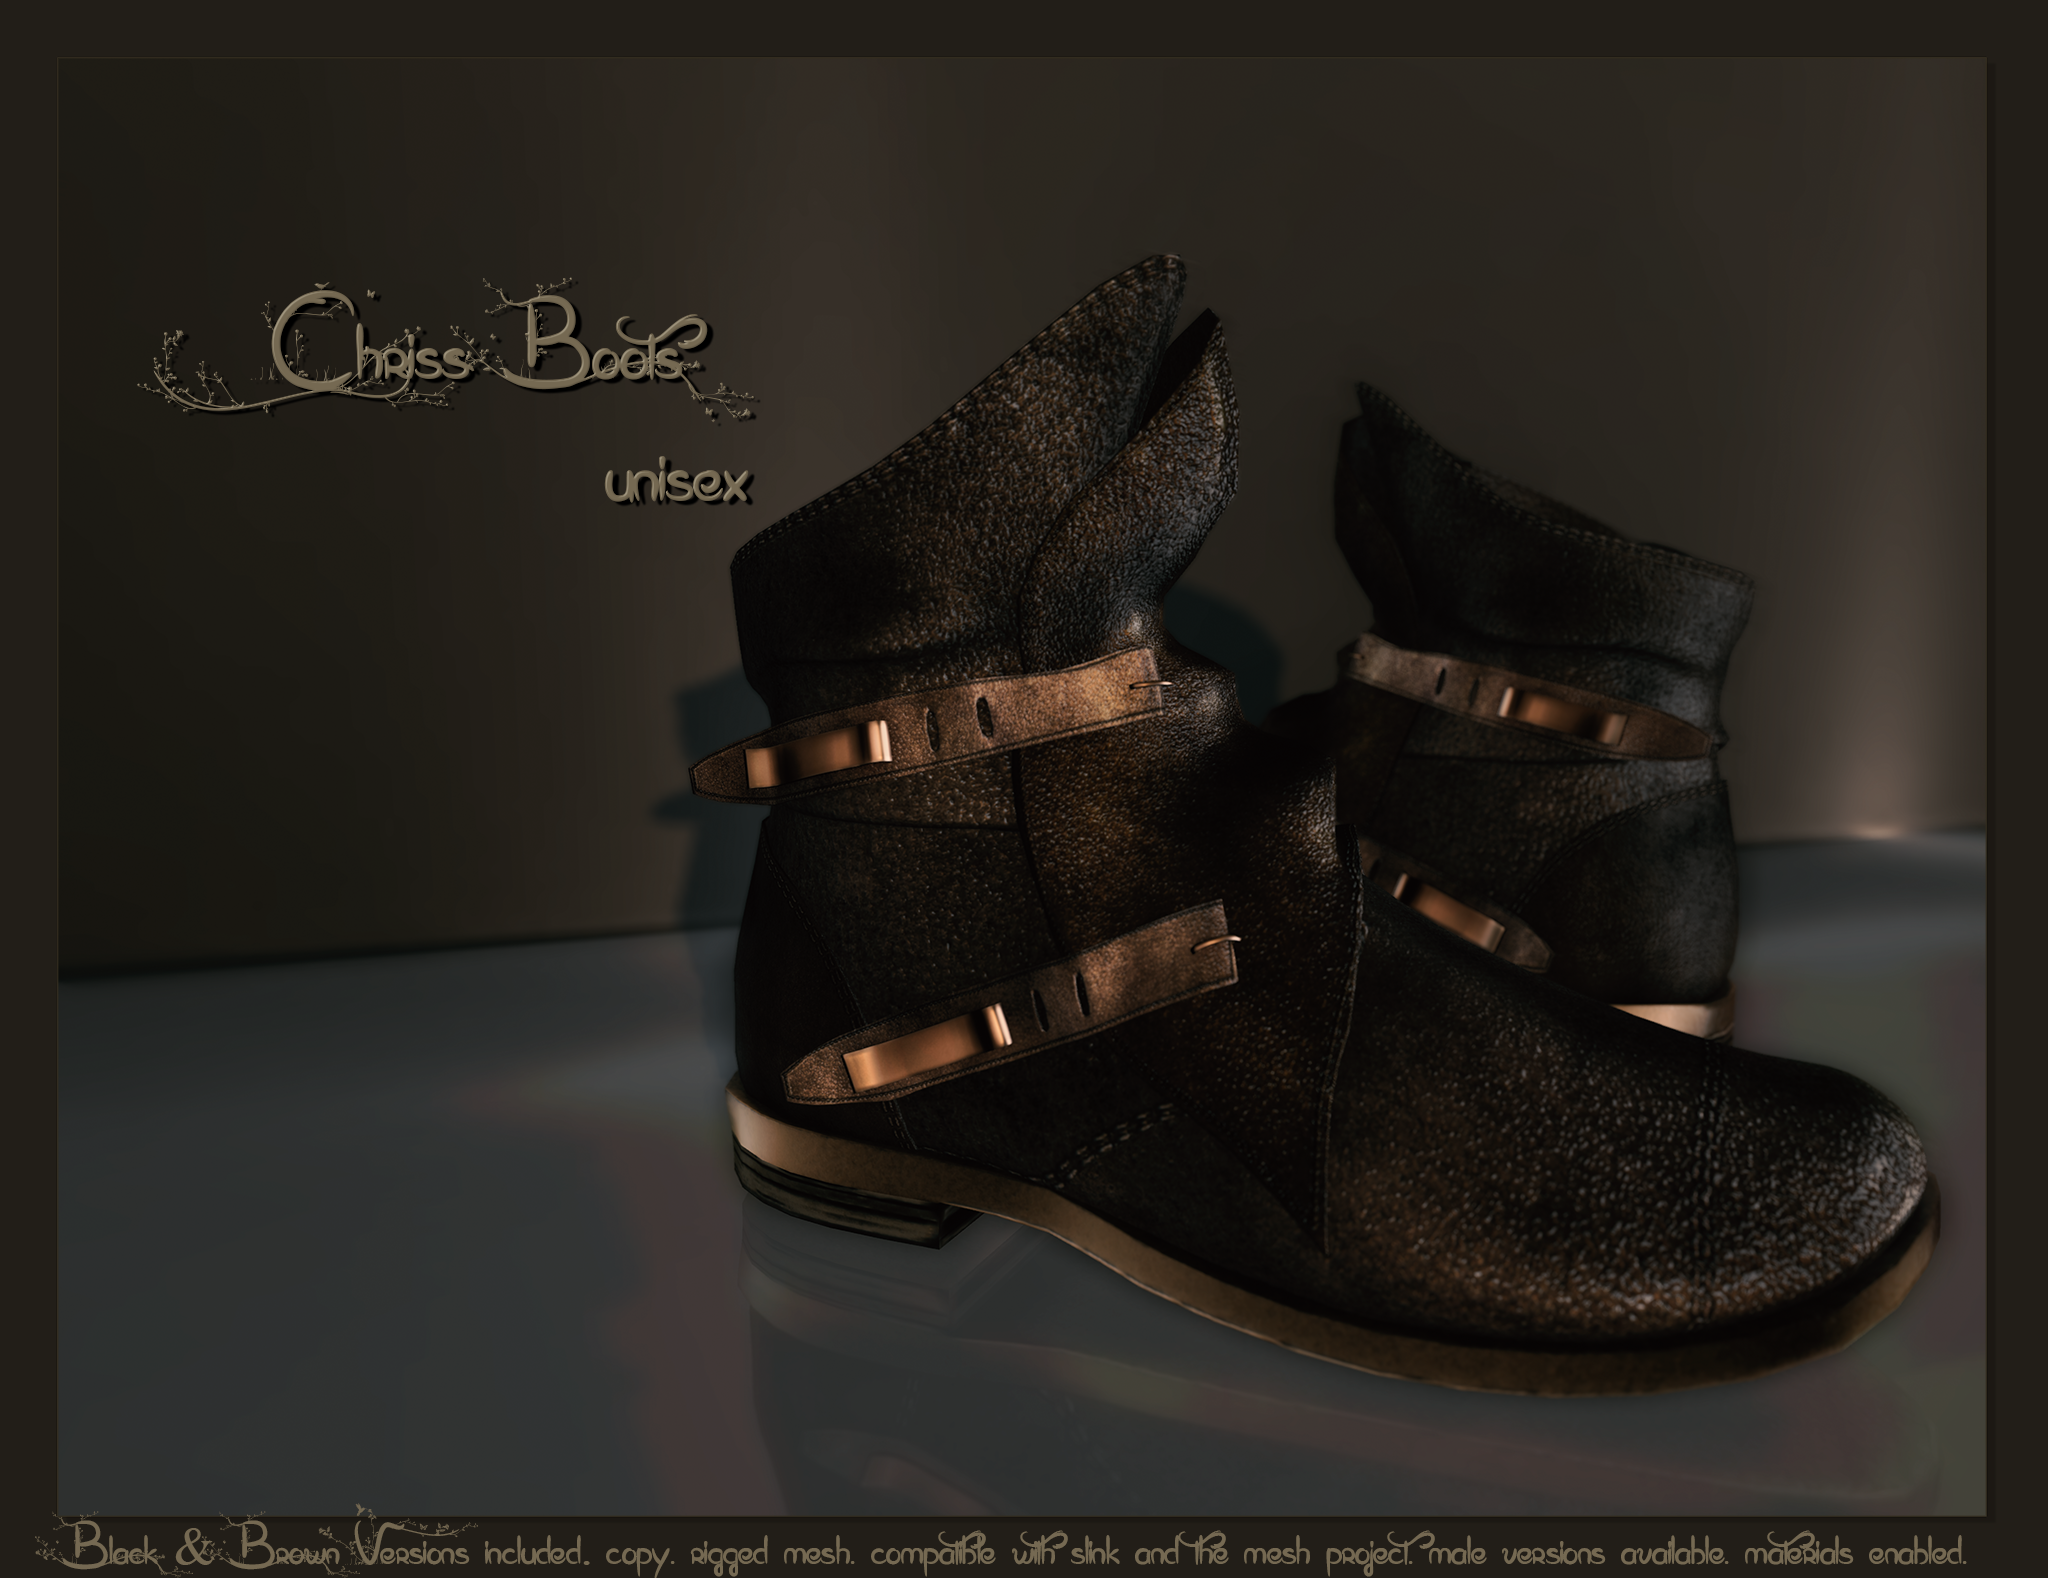 Pure Poison - Chriss Unisex Boots AD